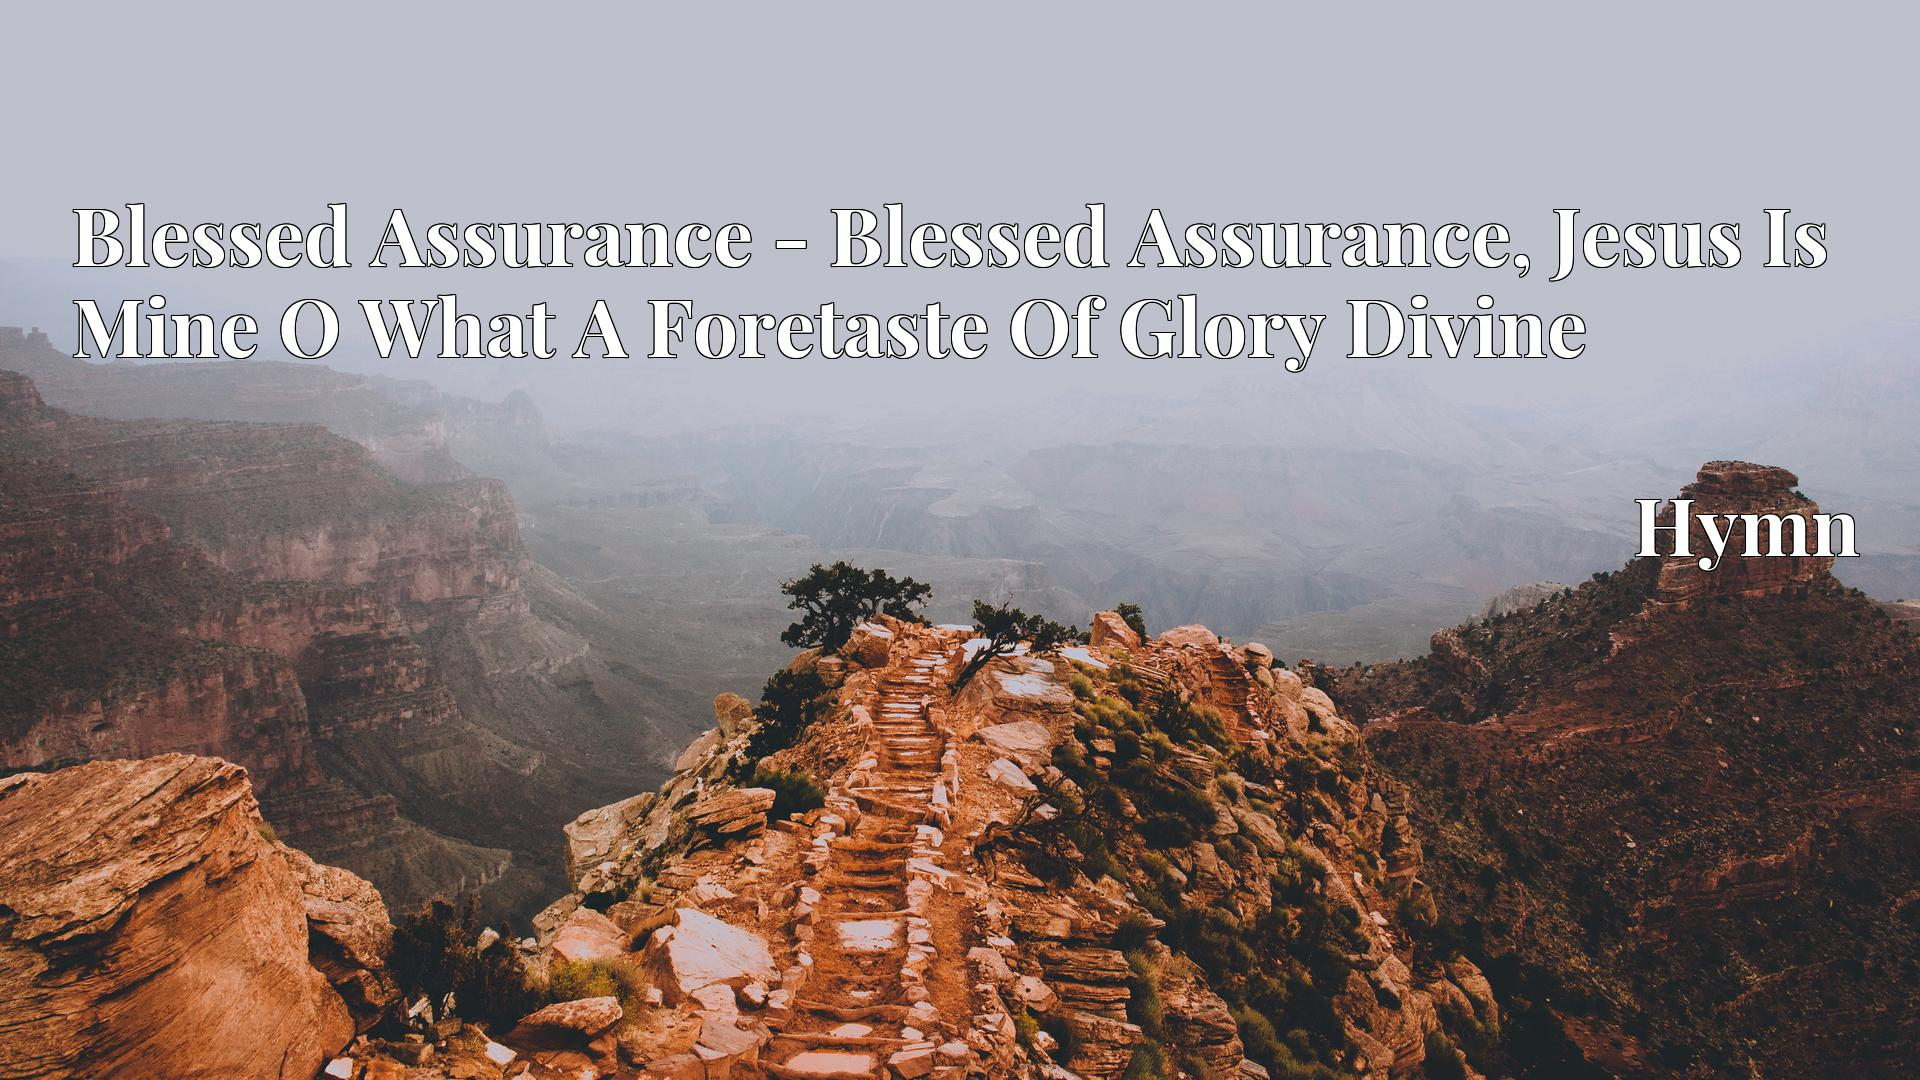 Blessed Assurance - Blessed Assurance, Jesus Is Mine O What A Foretaste Of Glory Divine - Hymn